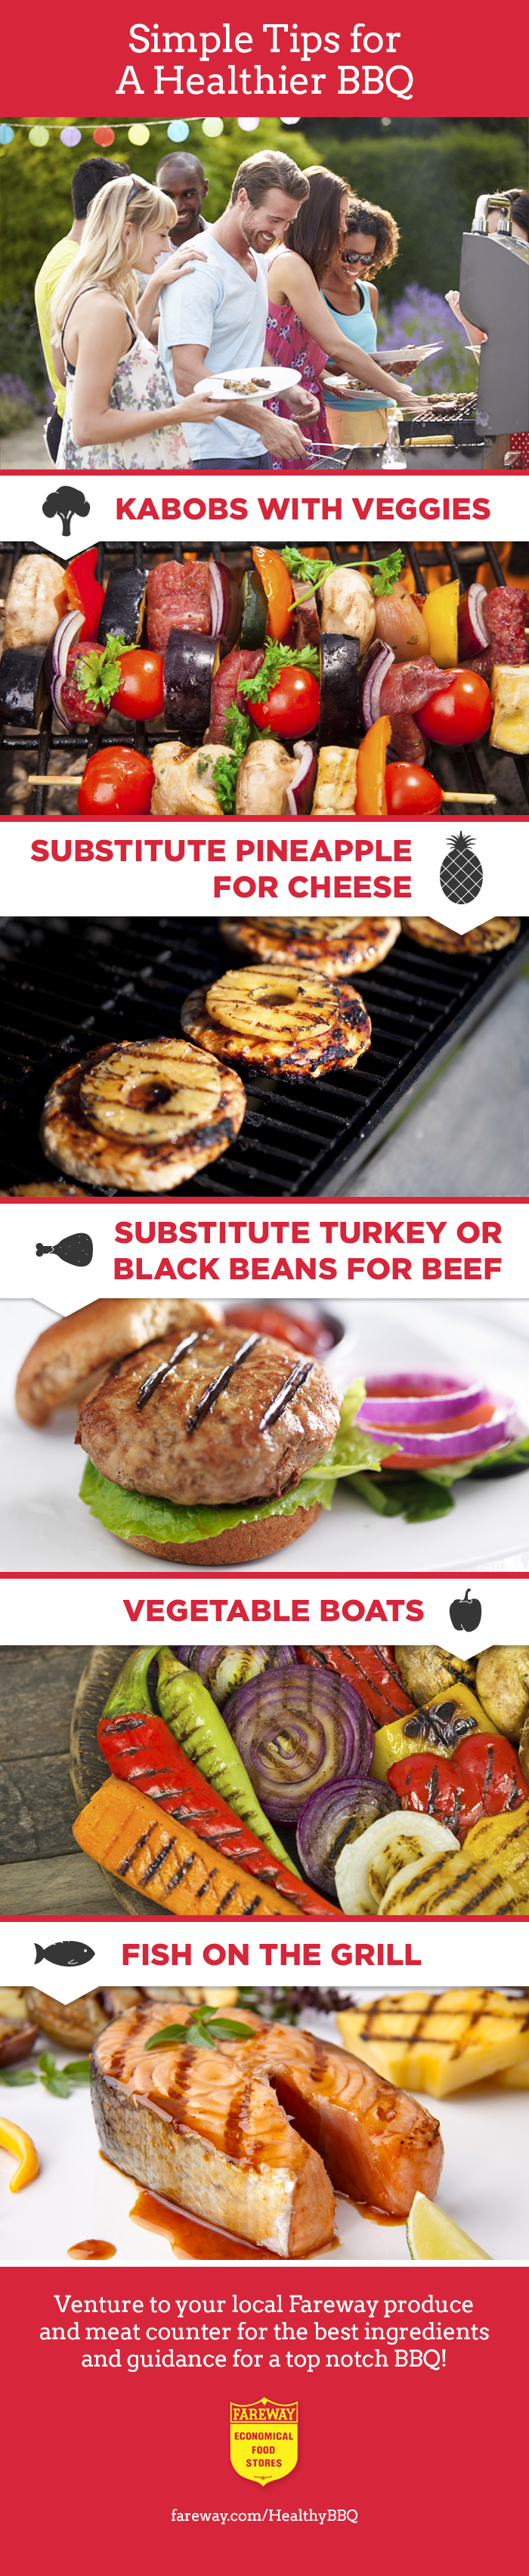 Simple Tips for a Healthier BBQ